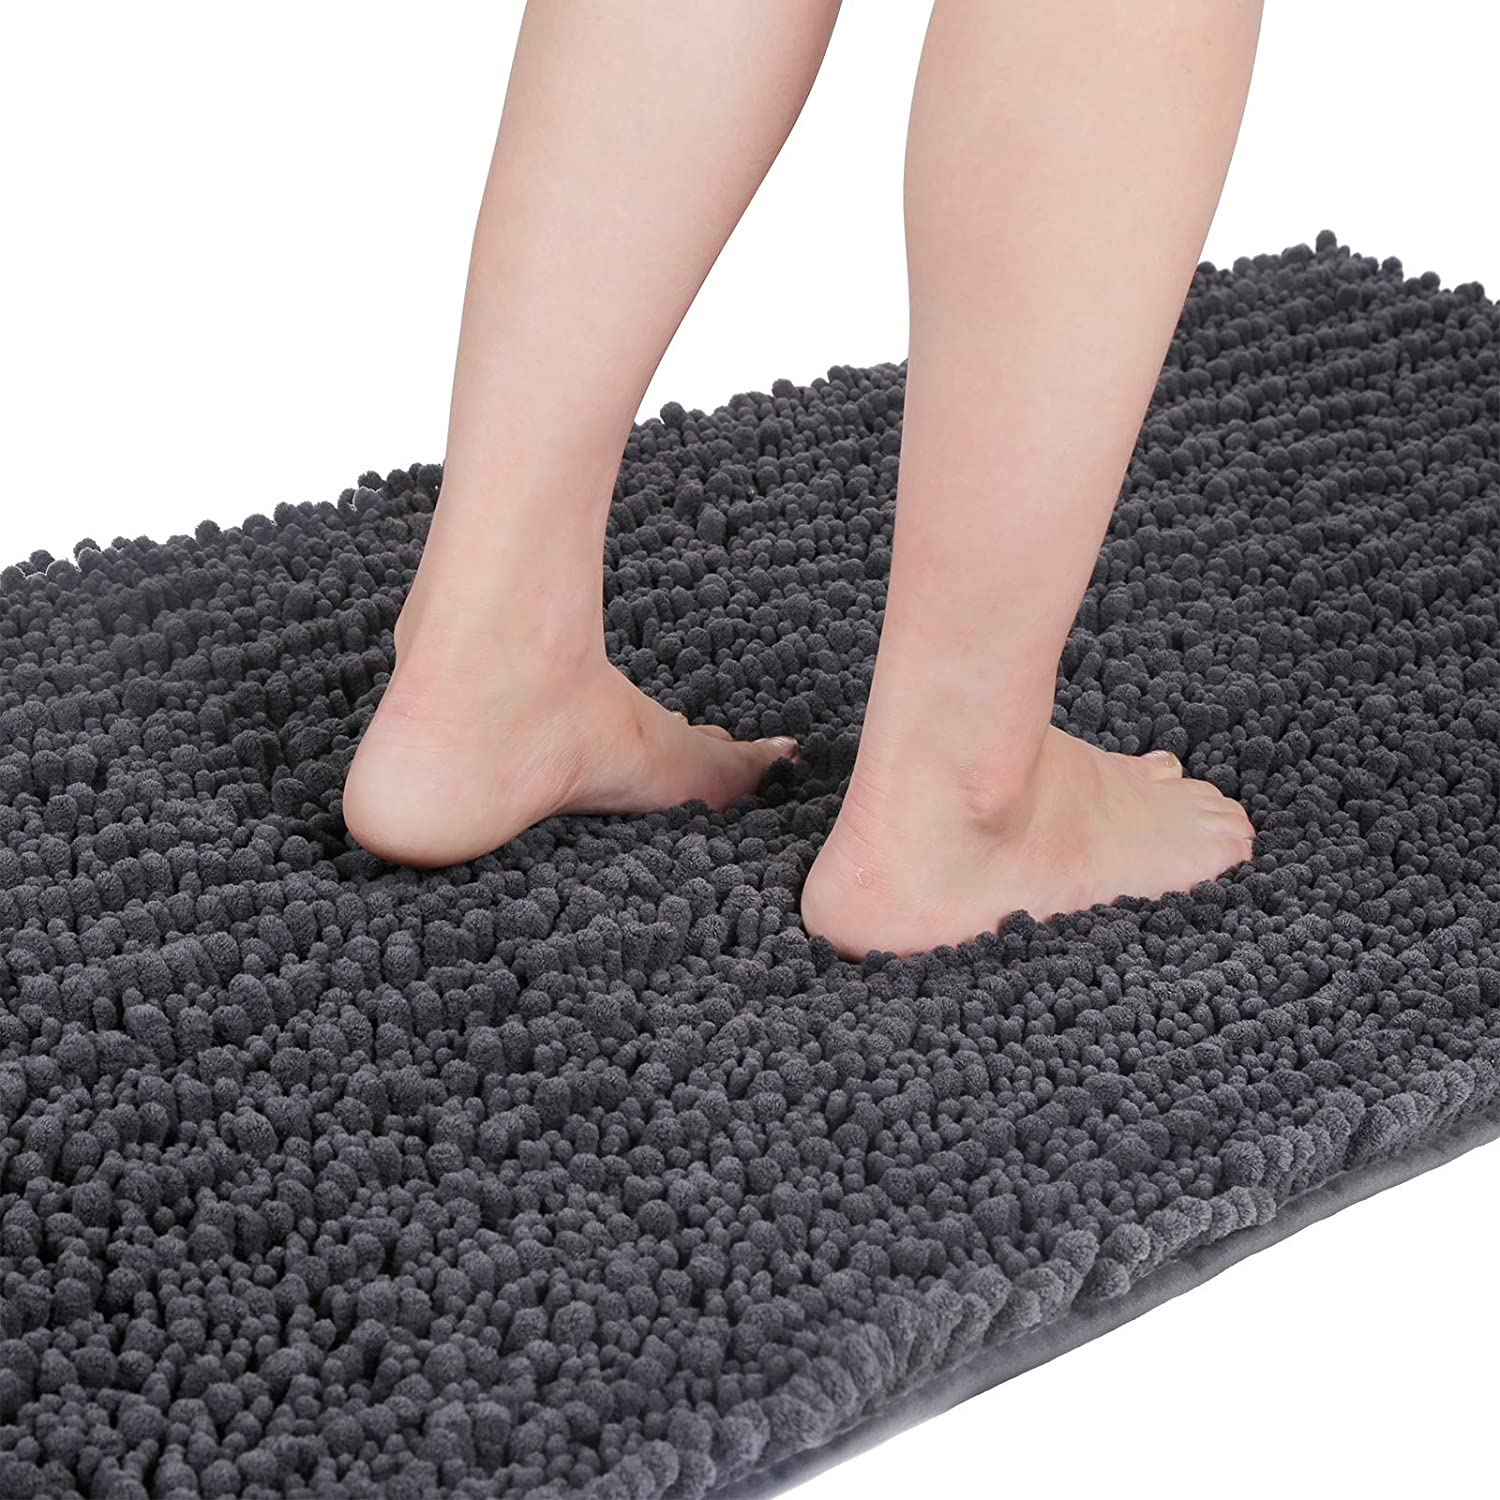 Yimobra Original Luxury Shaggy Bath Mat, 44.1 X 24 Inches, Super Absorbent Water, Non-Slip, Machine-Washable, Soft and Cozy, Thick Modern for Bathroom Bedroom, Dark Gray